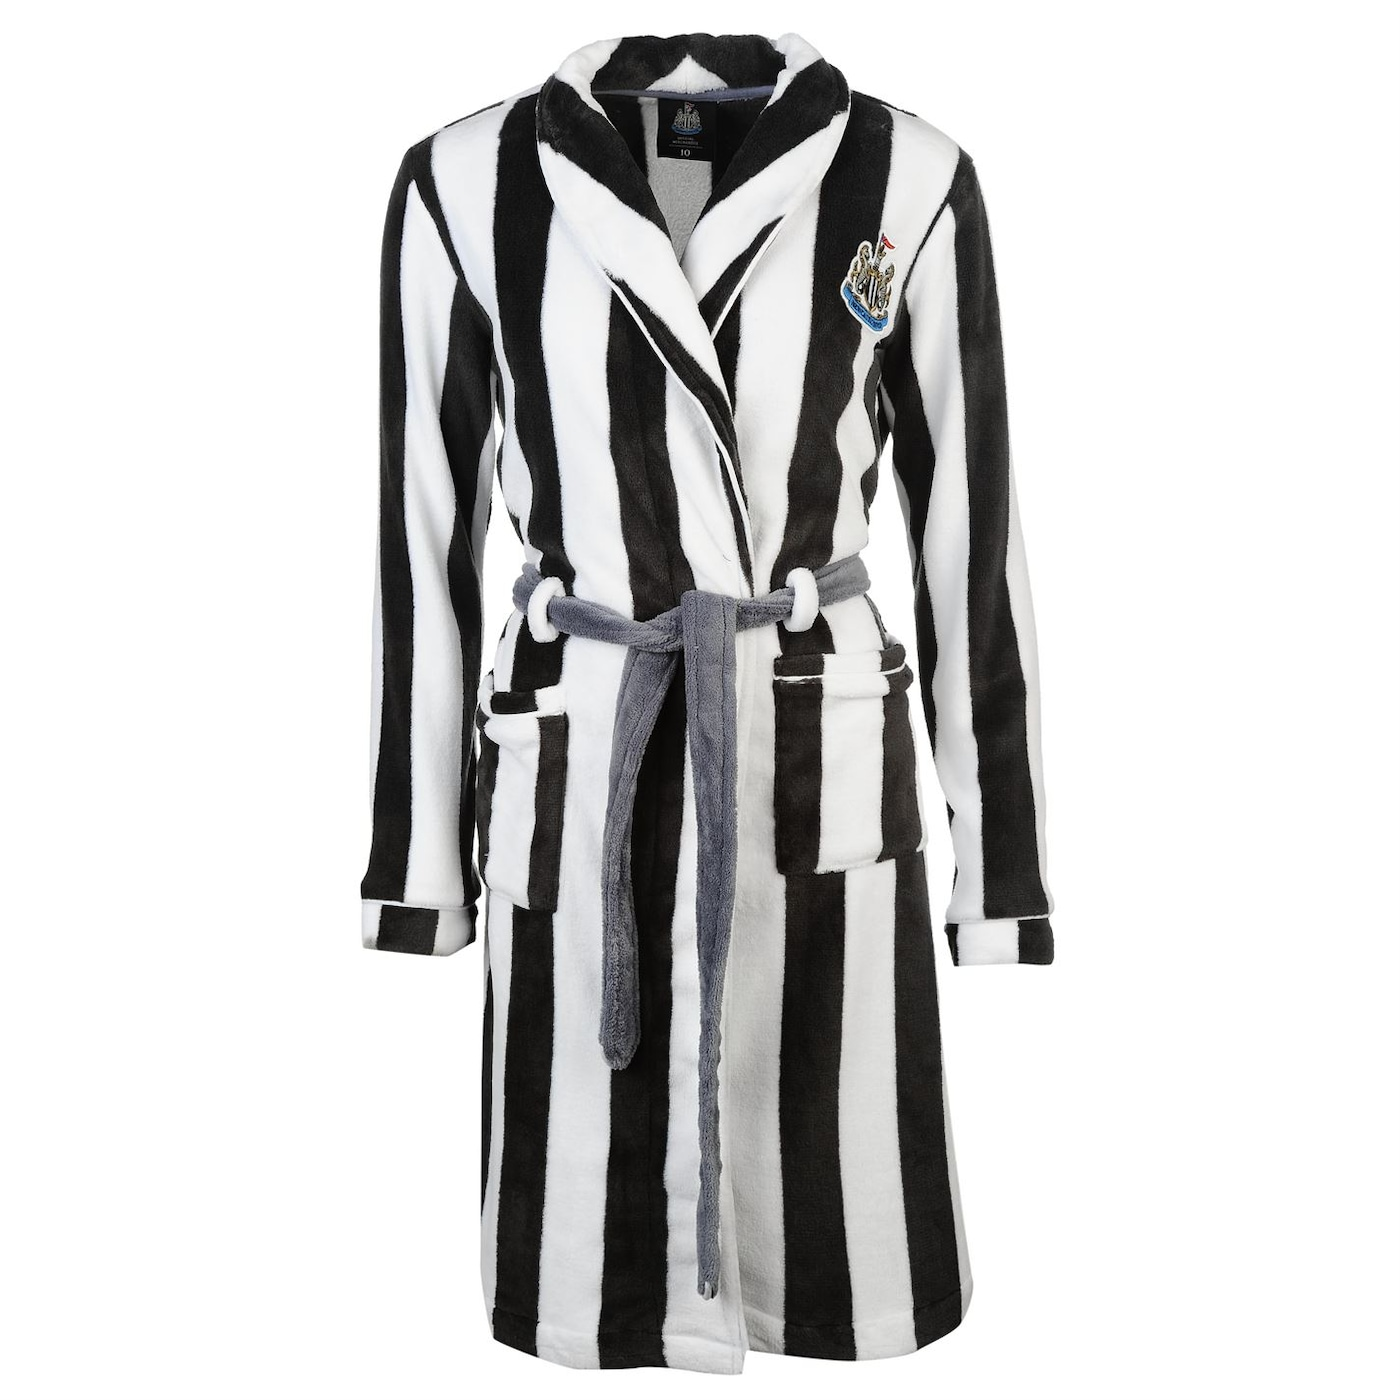 NUFC Dressing Gown Ladies